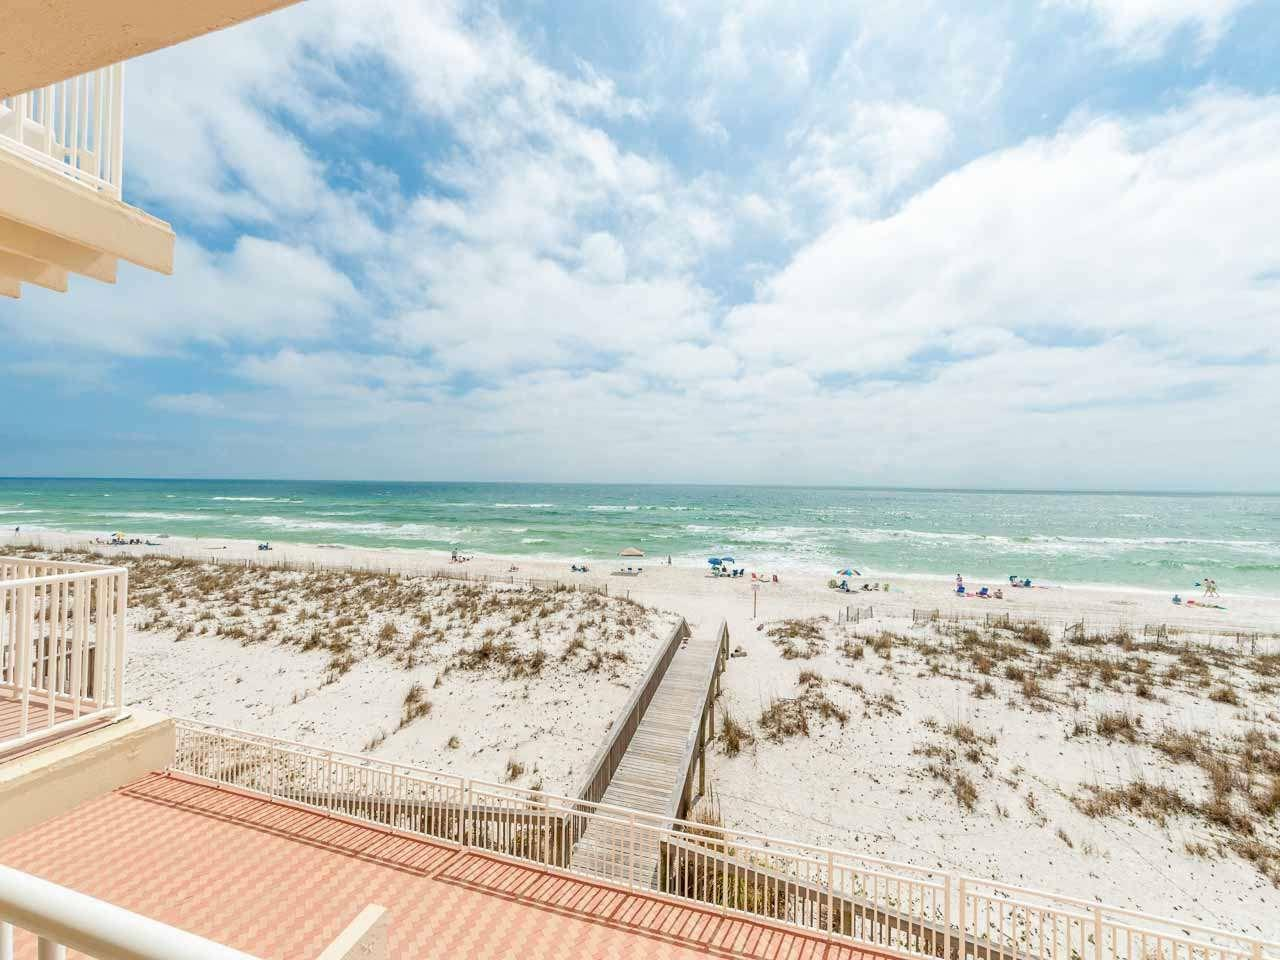 999 FT PICKENS RD, PENSACOLA BEACH, FL 32561